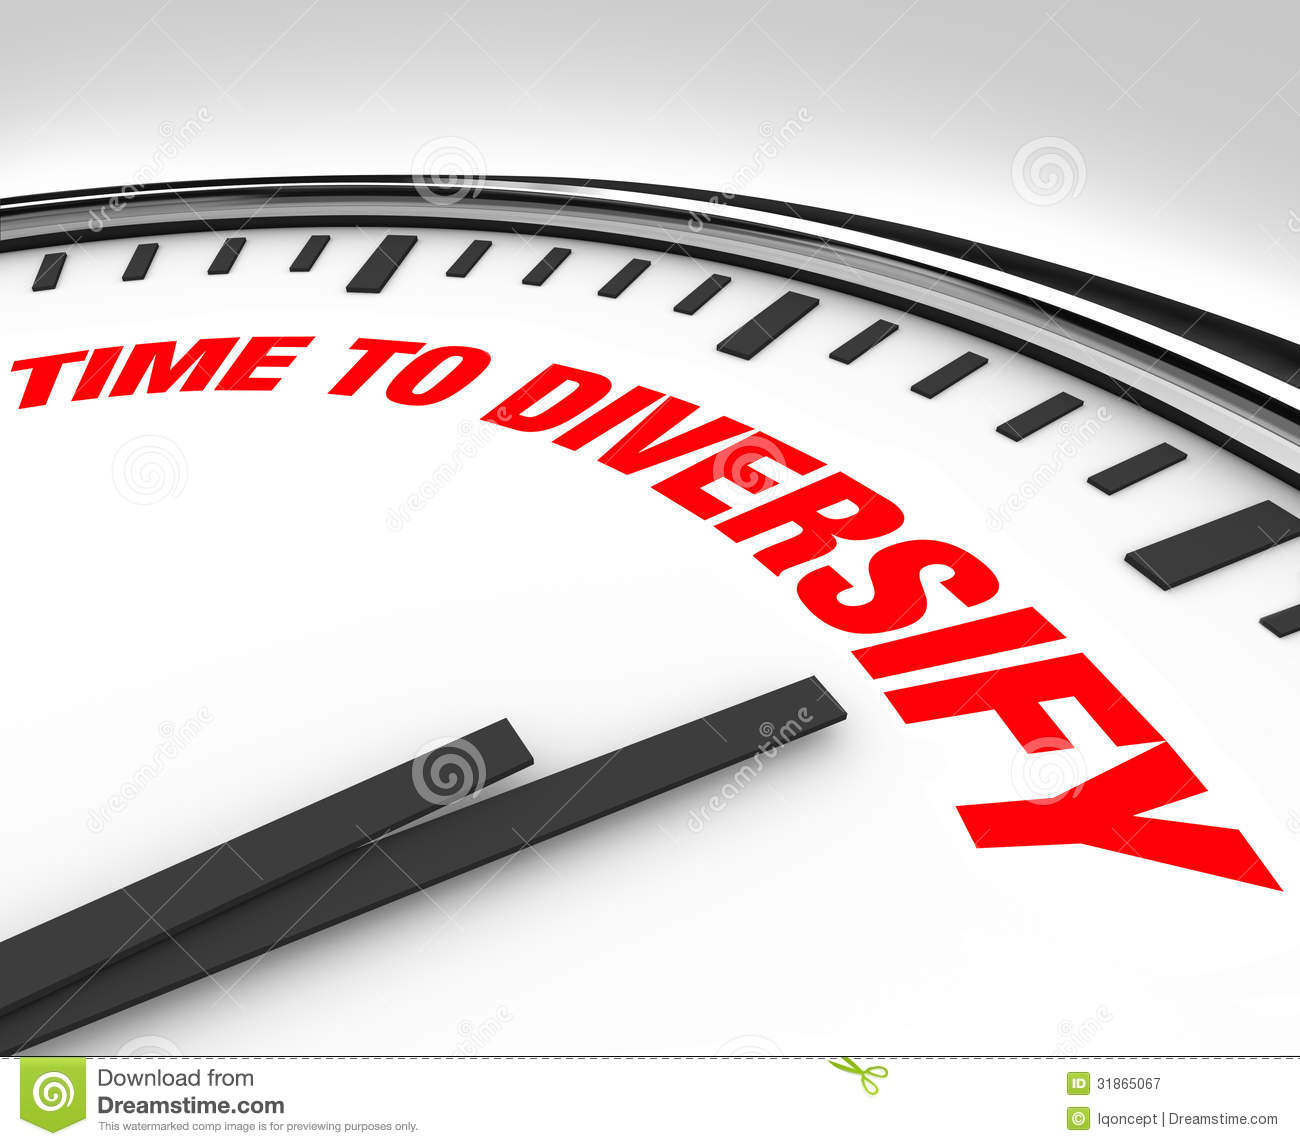 Time to Diversify Clock Manage Investment Risk